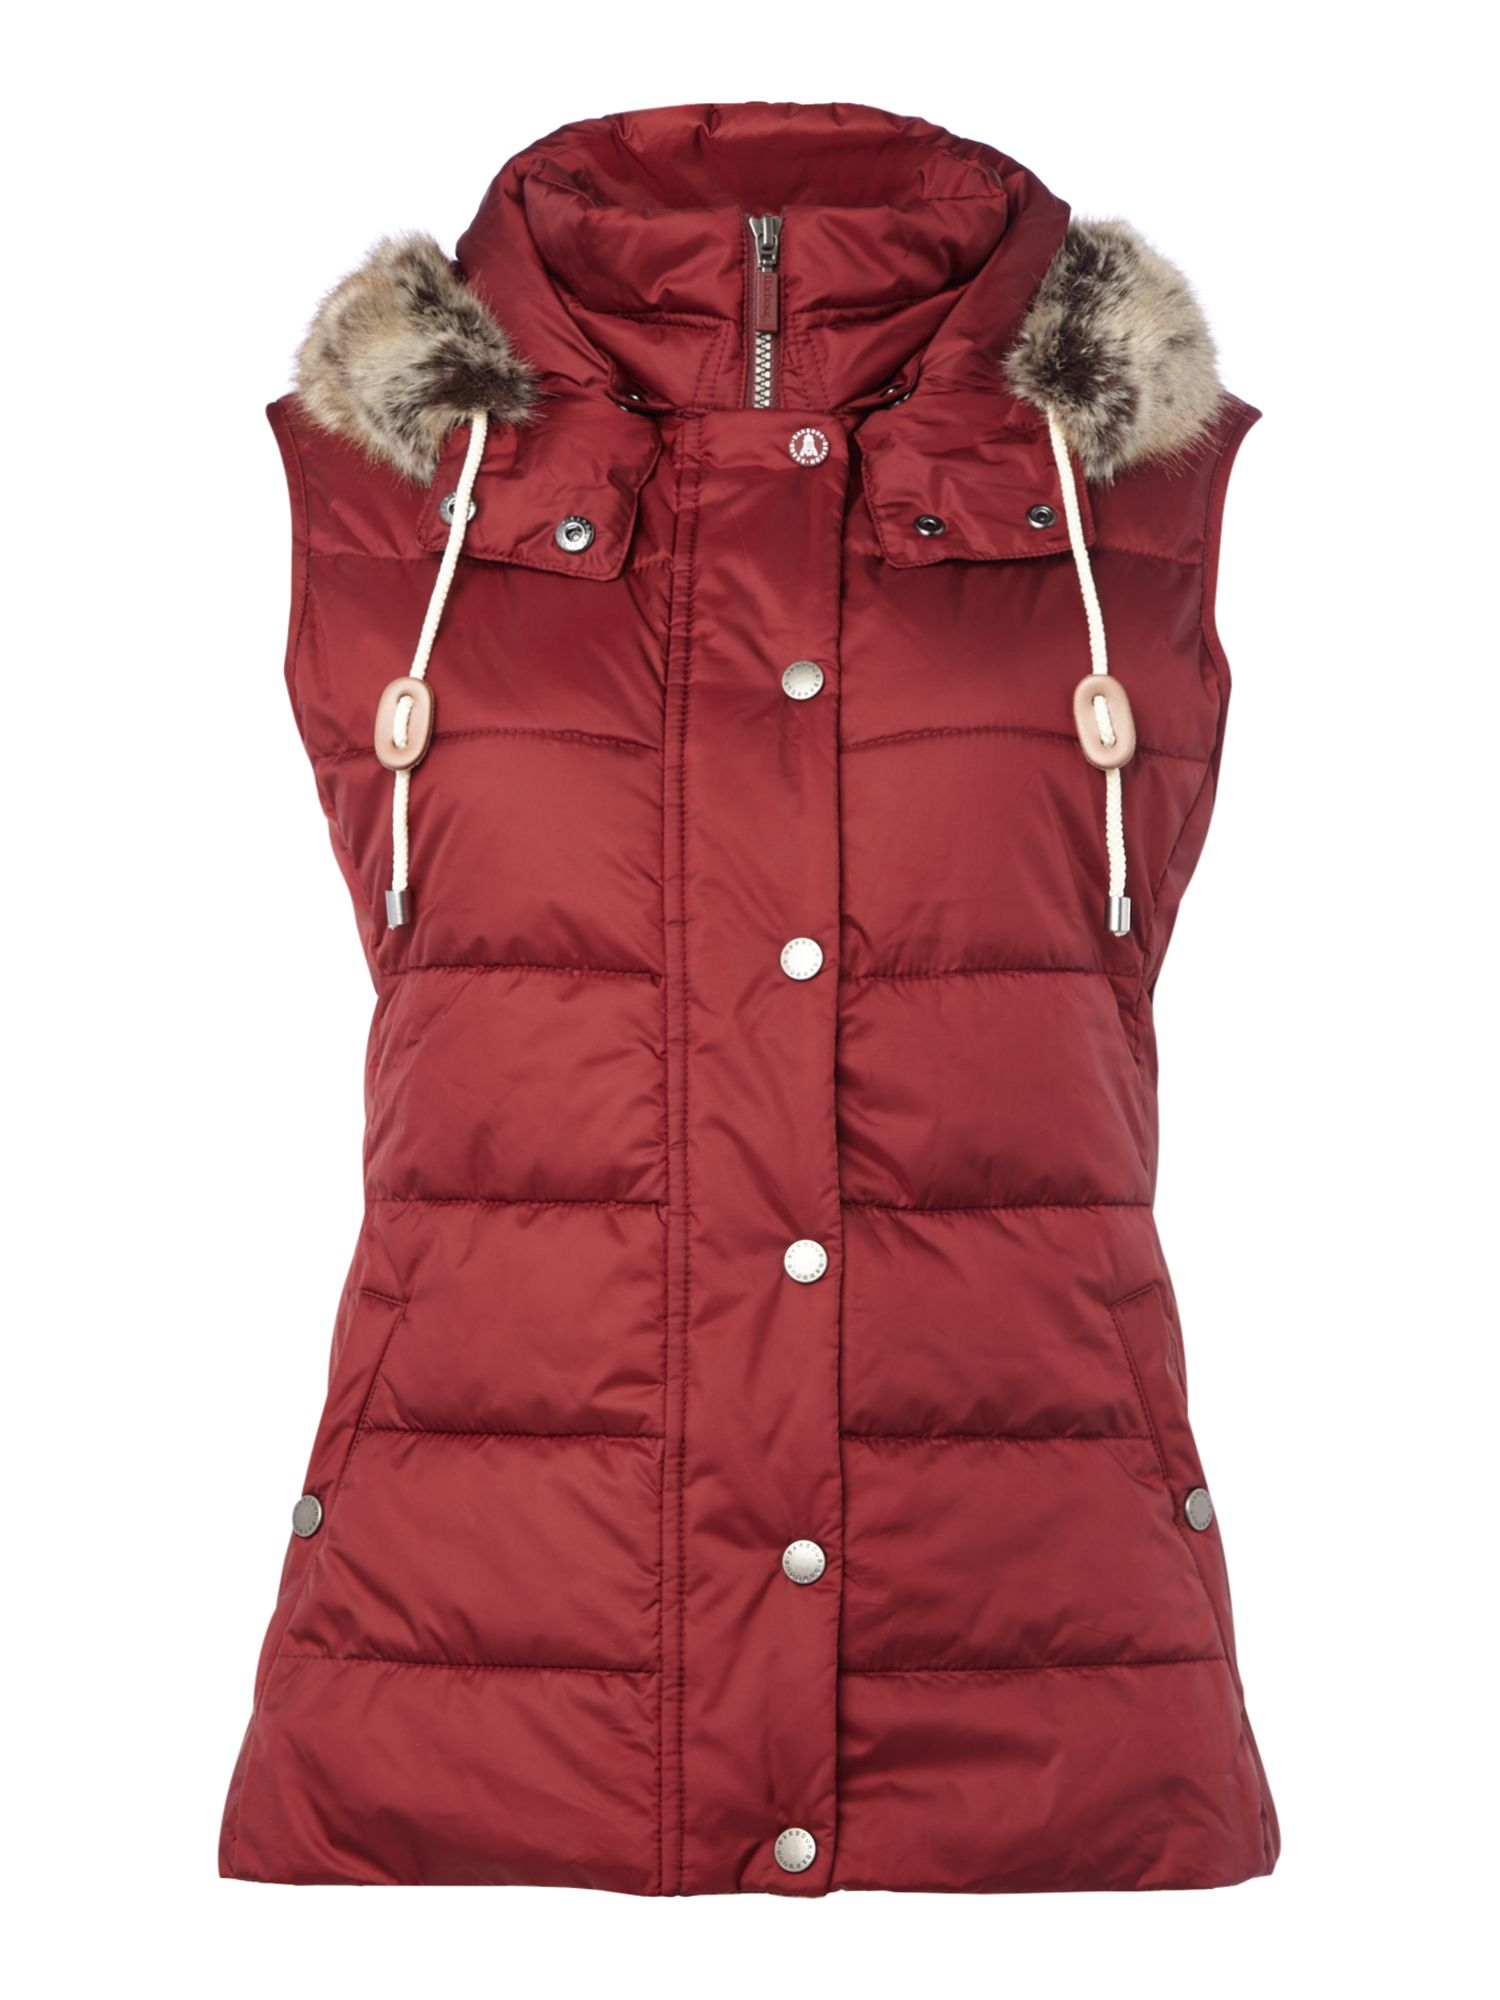 Barbour Beachly Gilet, Wine